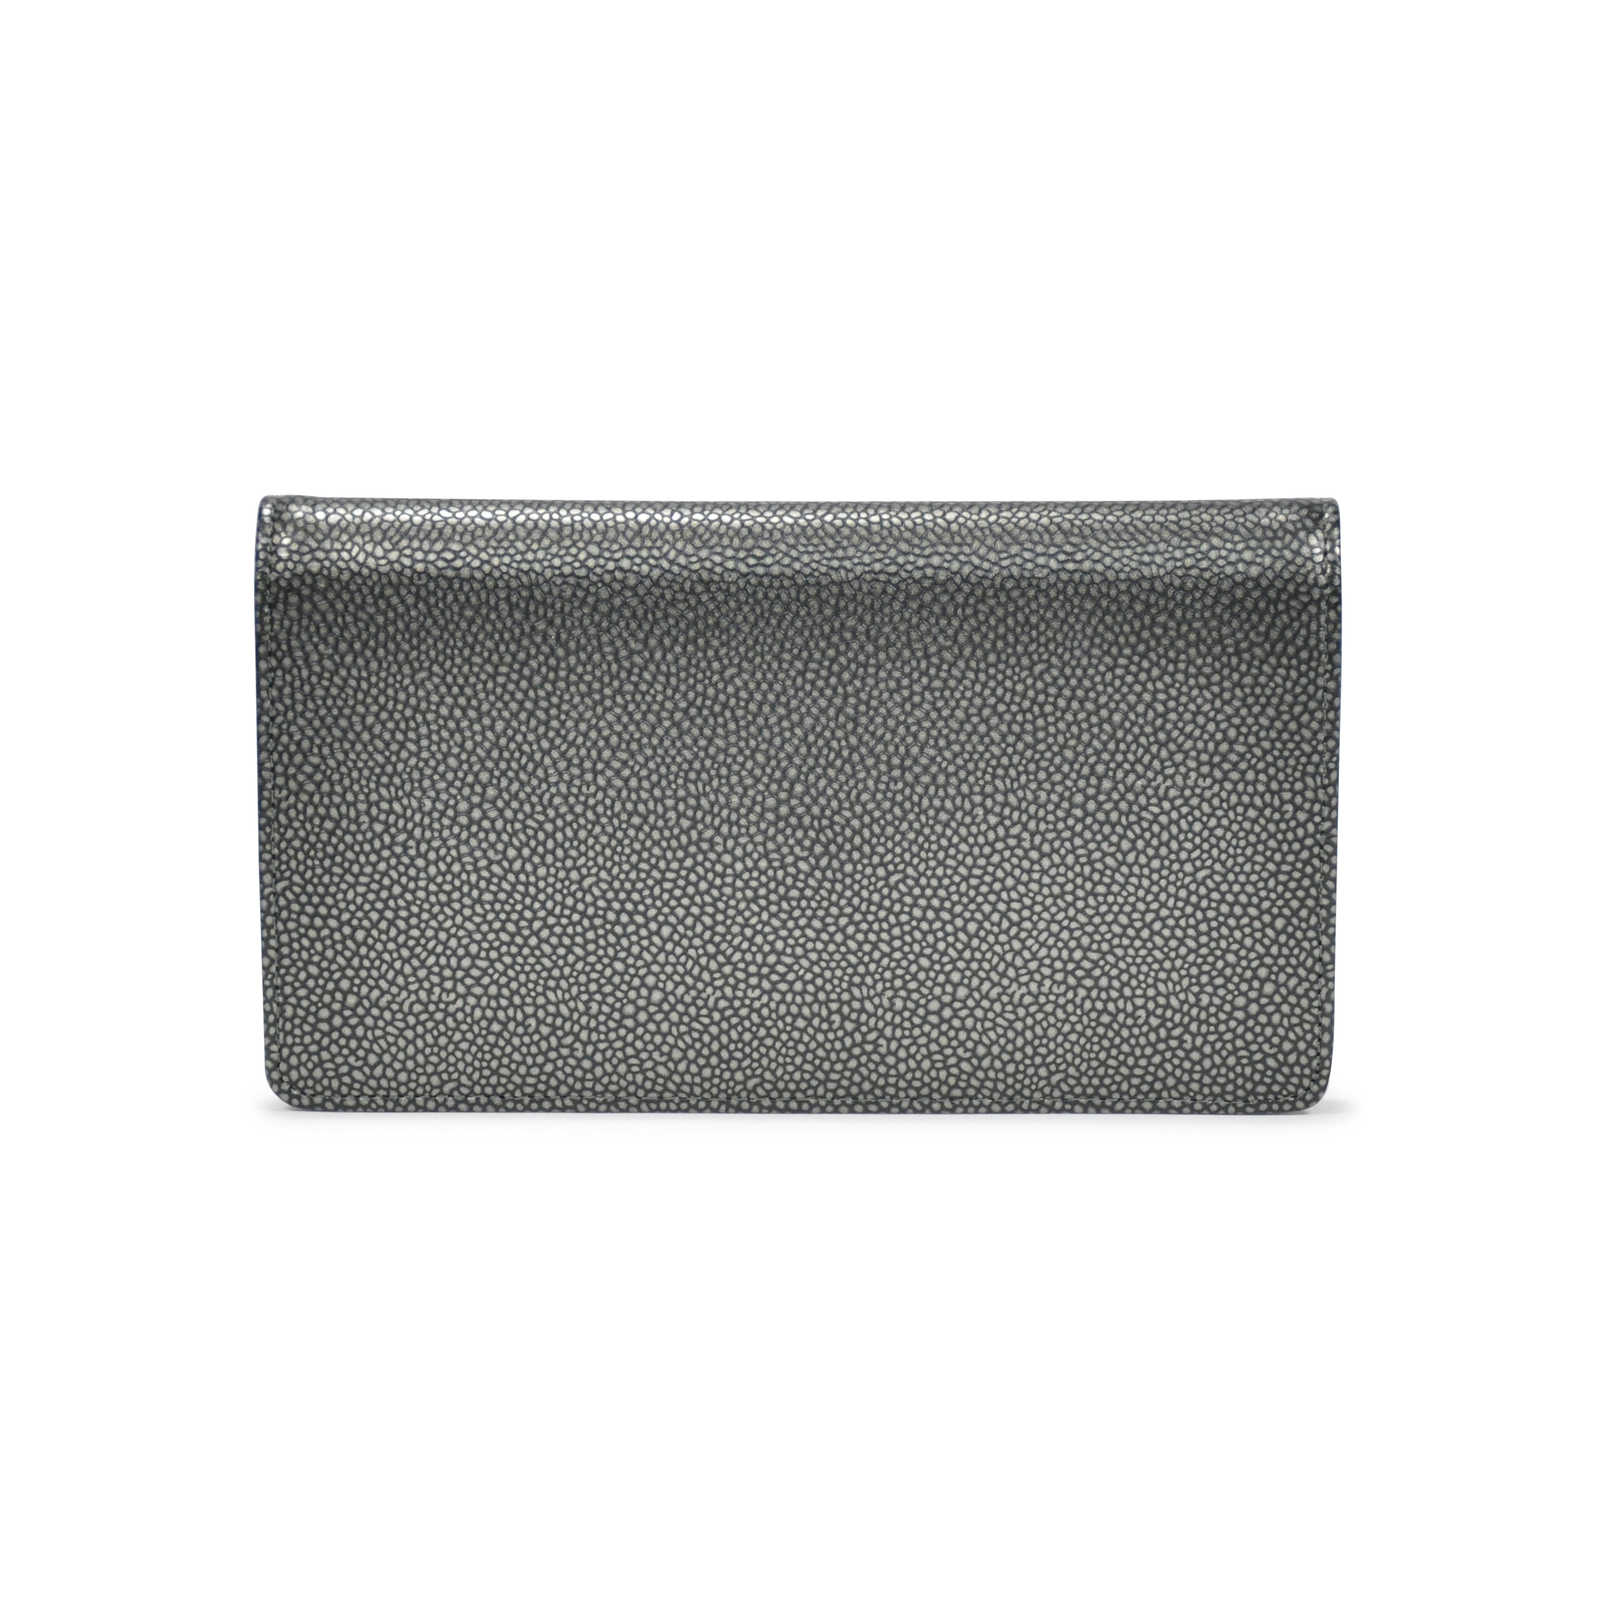 f80c54eef4c0 Authentic Pre Owned Chanel Caviar Yen Wallet (PSS-240-00014) | THE